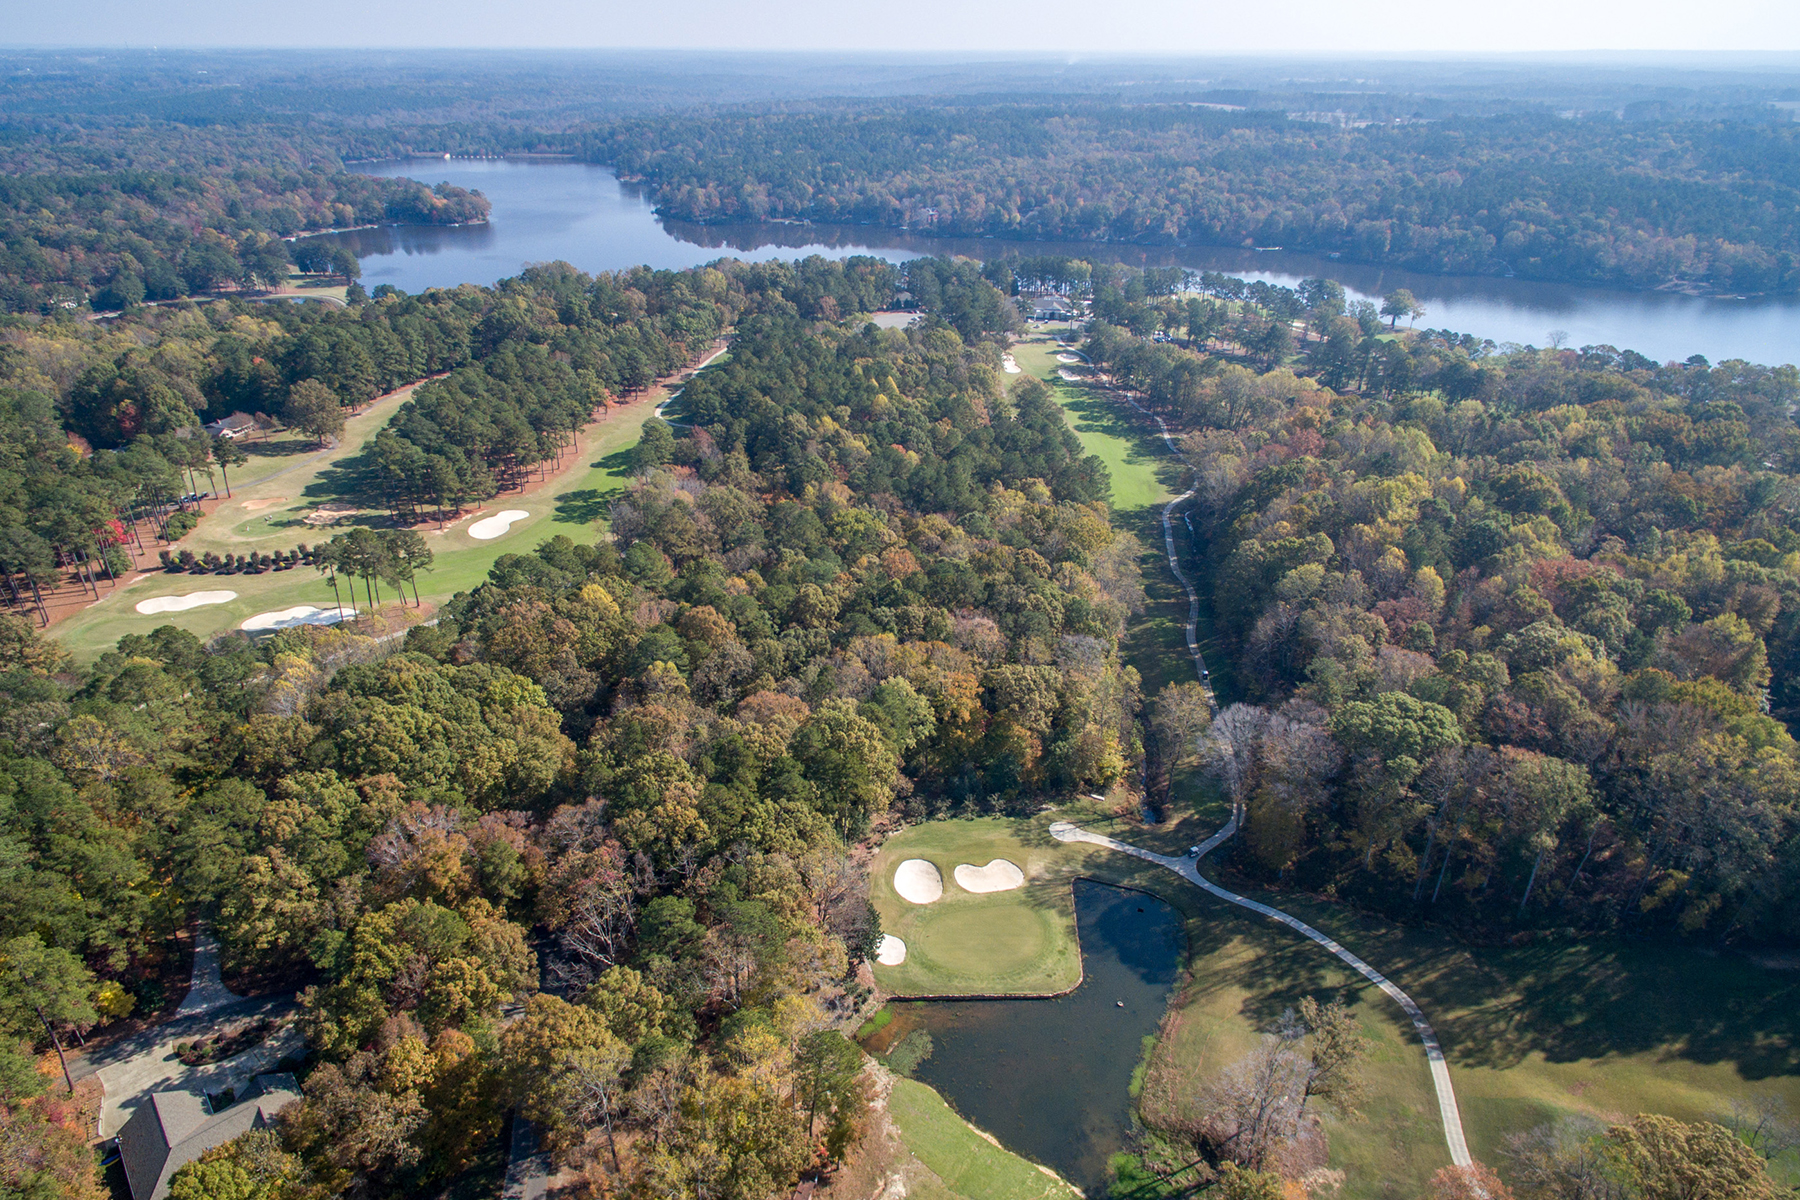 Land for Sale at SANFORD 9999 Country Club Dr, Sanford, North Carolina 27332 United States